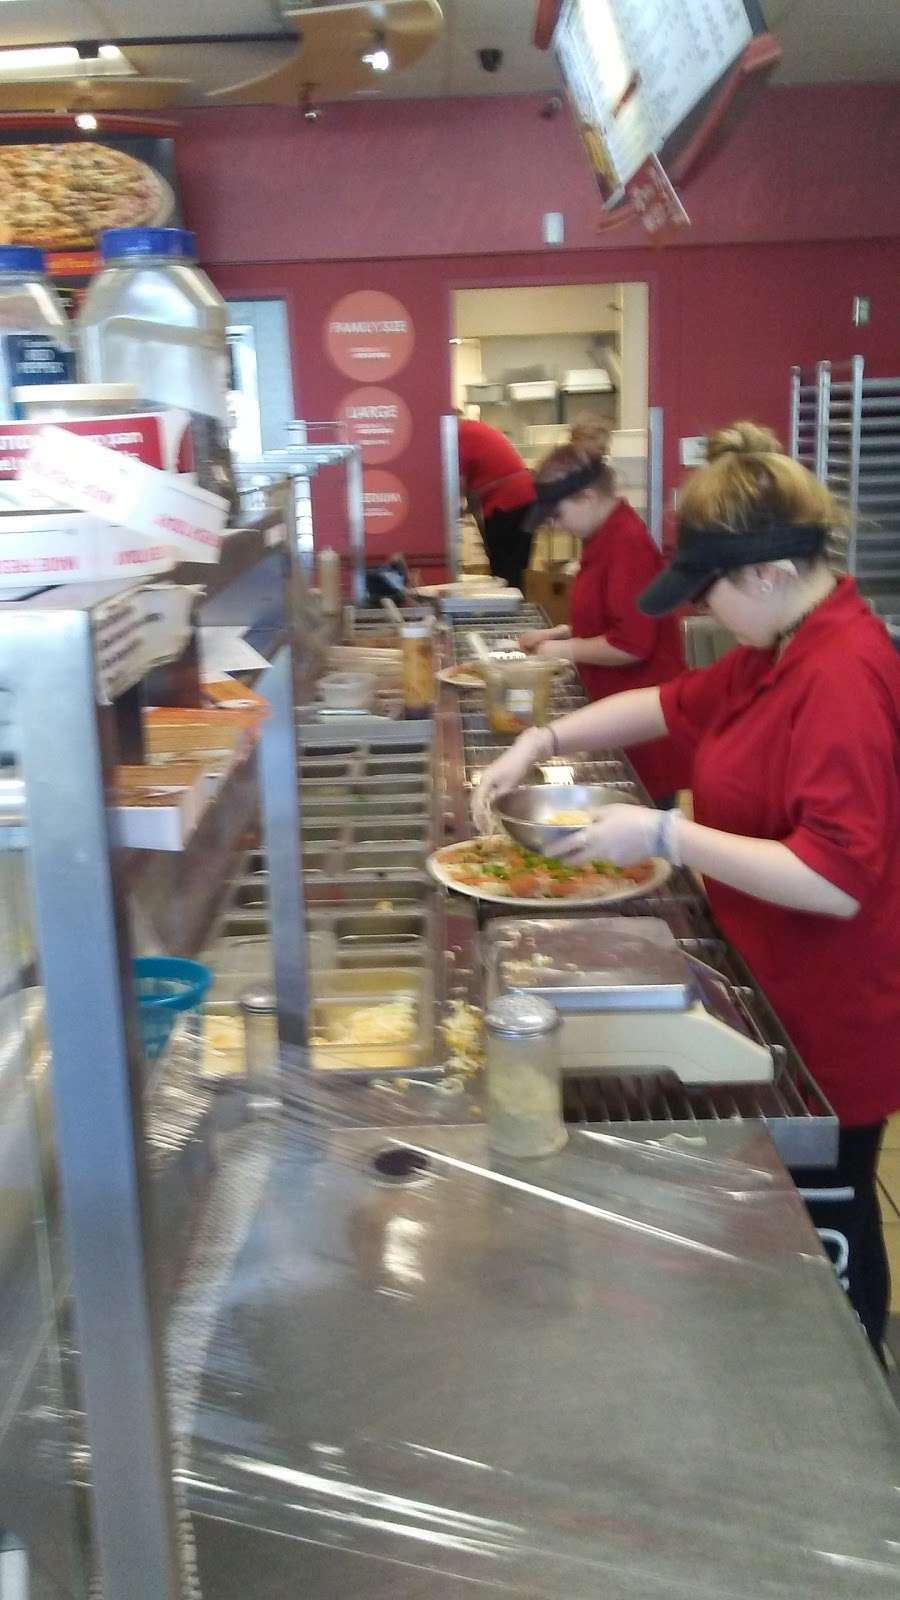 Papa Murphys Take N Bake Pizza - meal takeaway  | Photo 4 of 6 | Address: 4401 E 10th St, Indianapolis, IN 46201, USA | Phone: (317) 356-7272